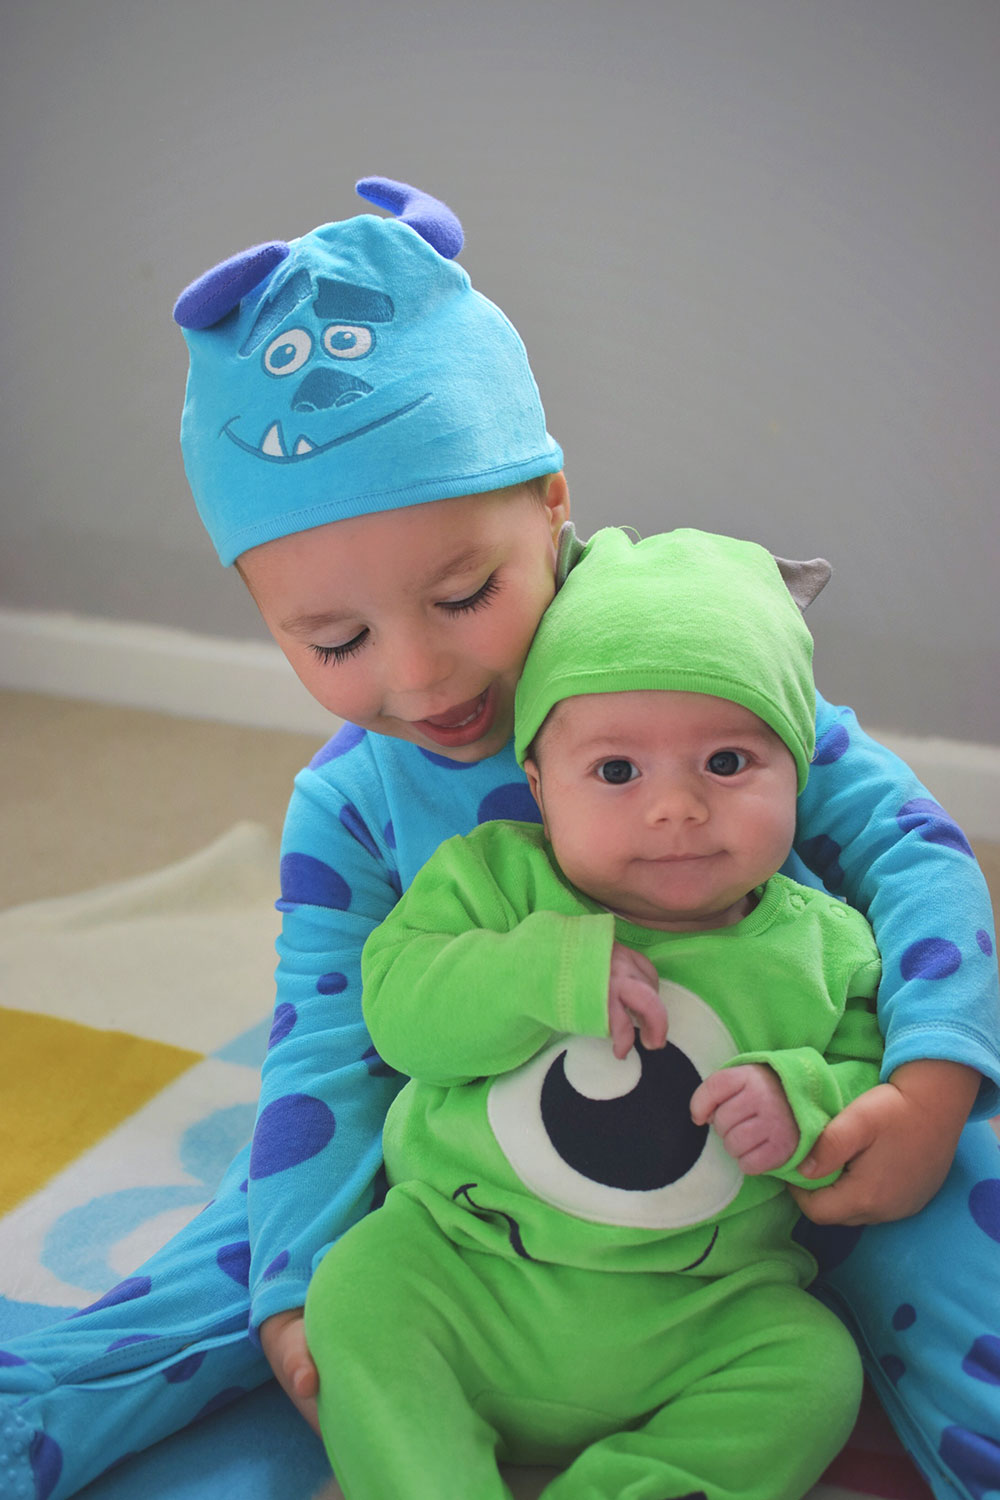 sully monsters inc halloween costume ✓ the halloween and makeup